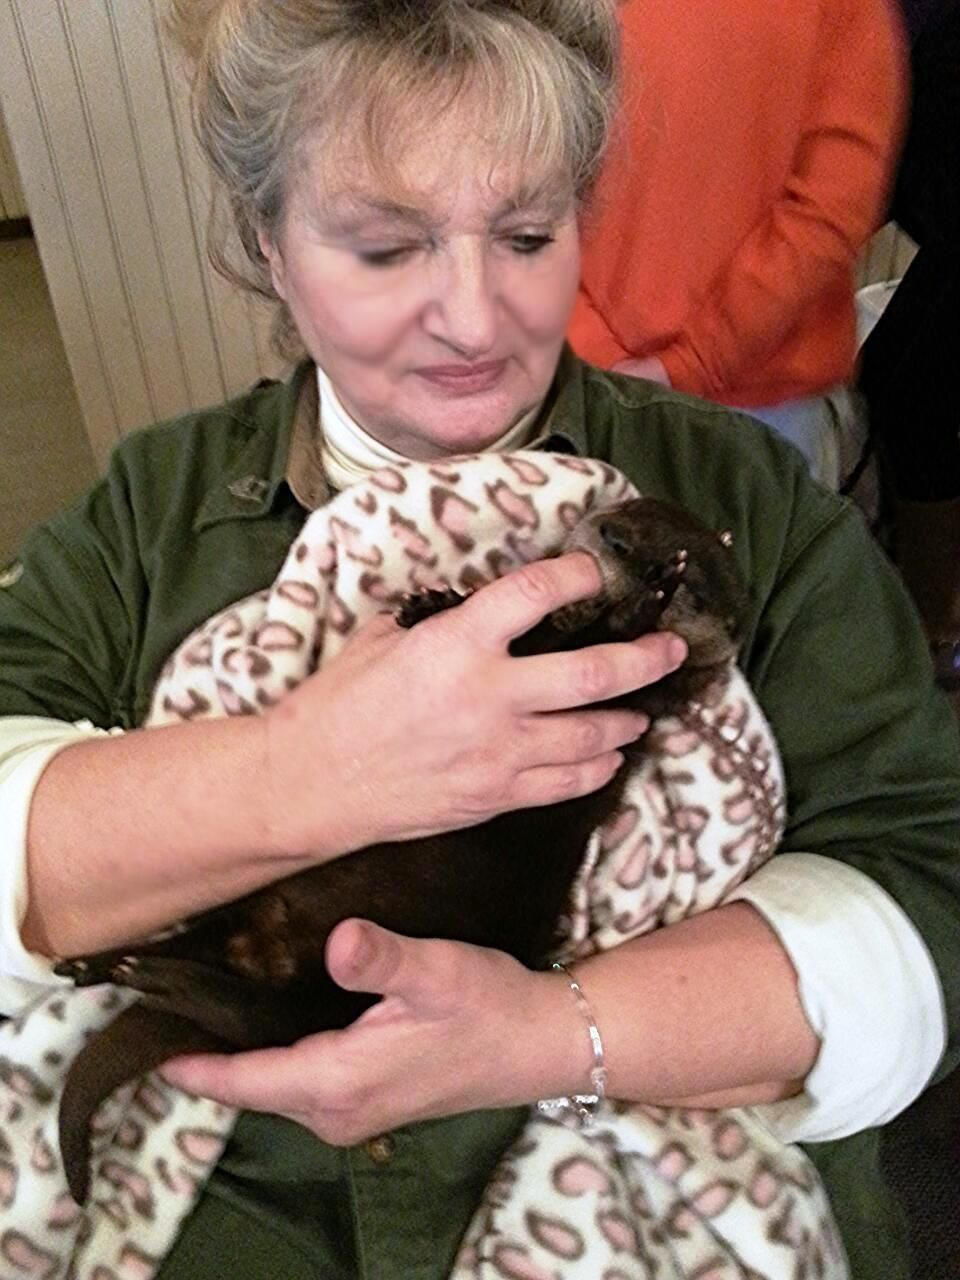 Wildlife rehab group faces issues with easement